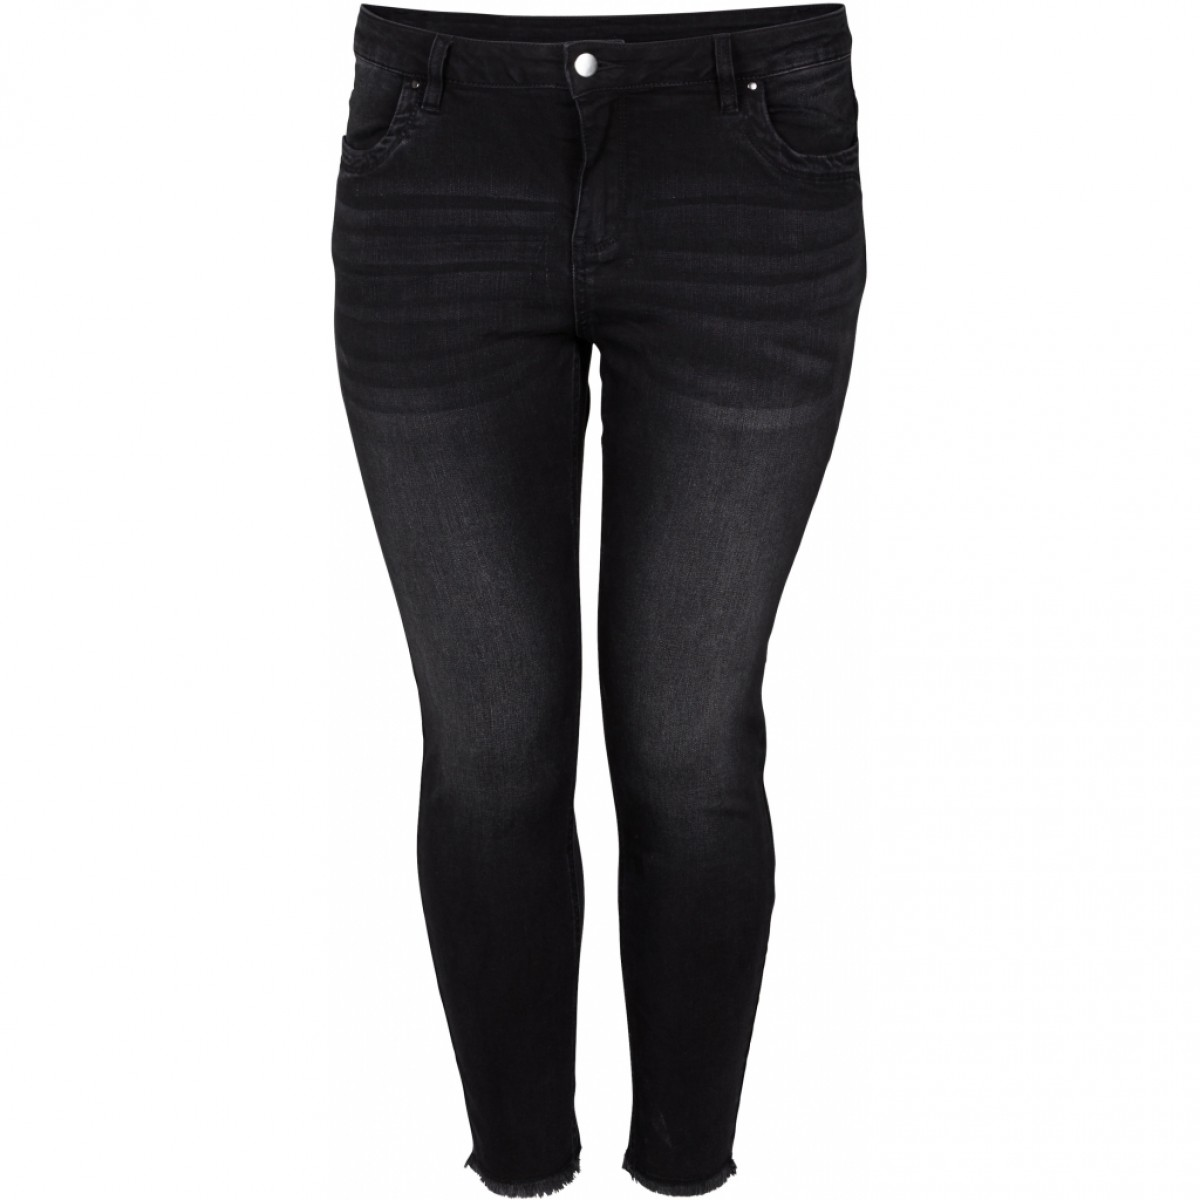 Zoey 203-0911 Jeans